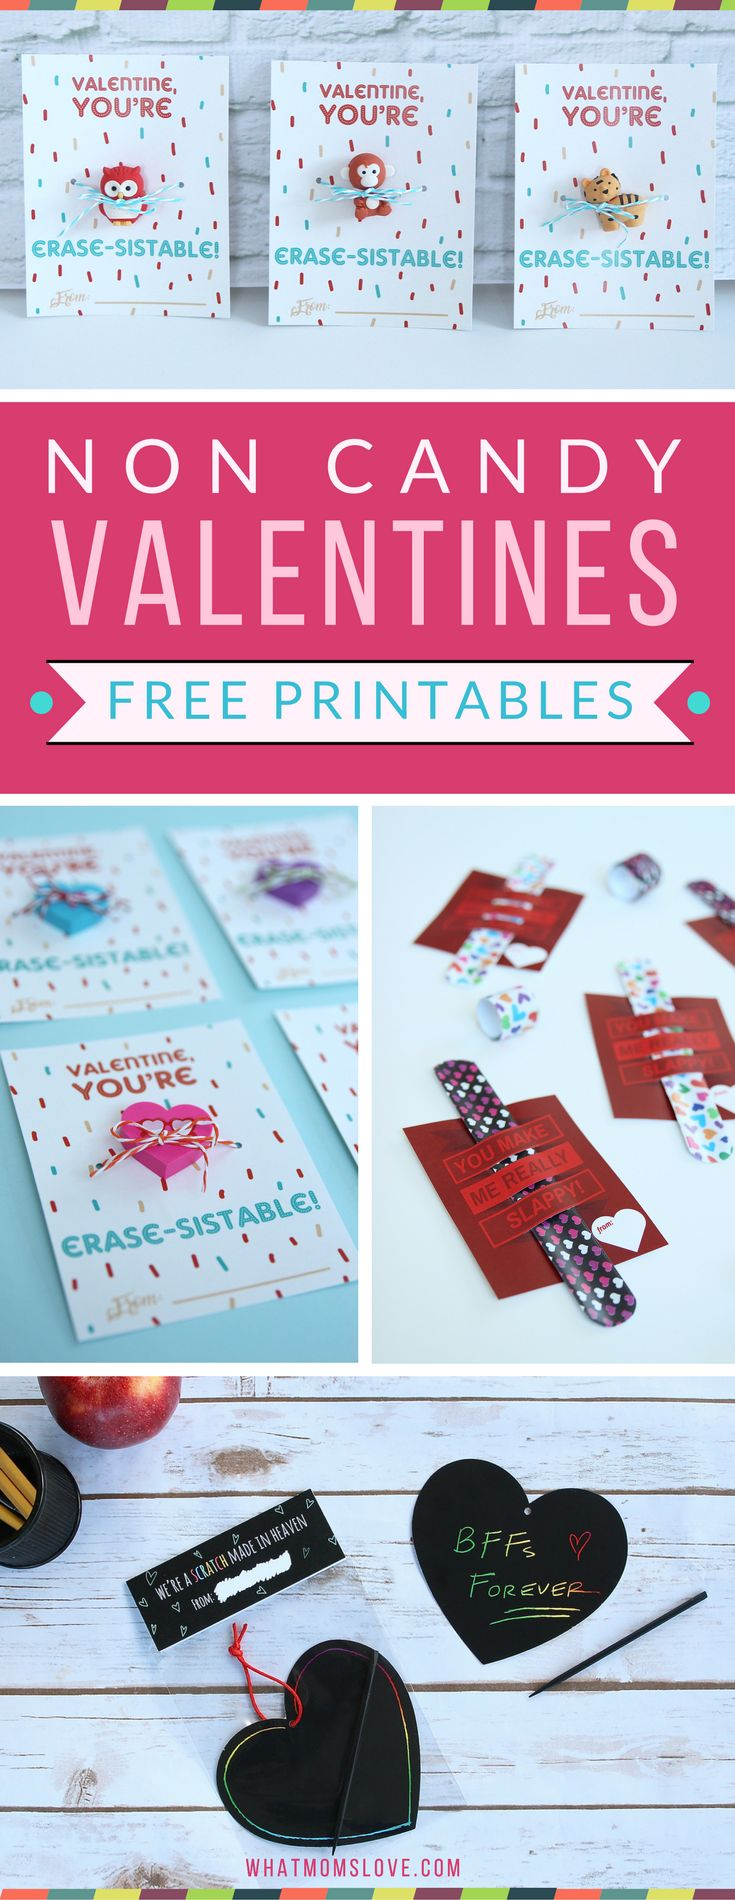 No Candy Printable Valentines Cards For Your Kids School Classroom. via @whatmomslove